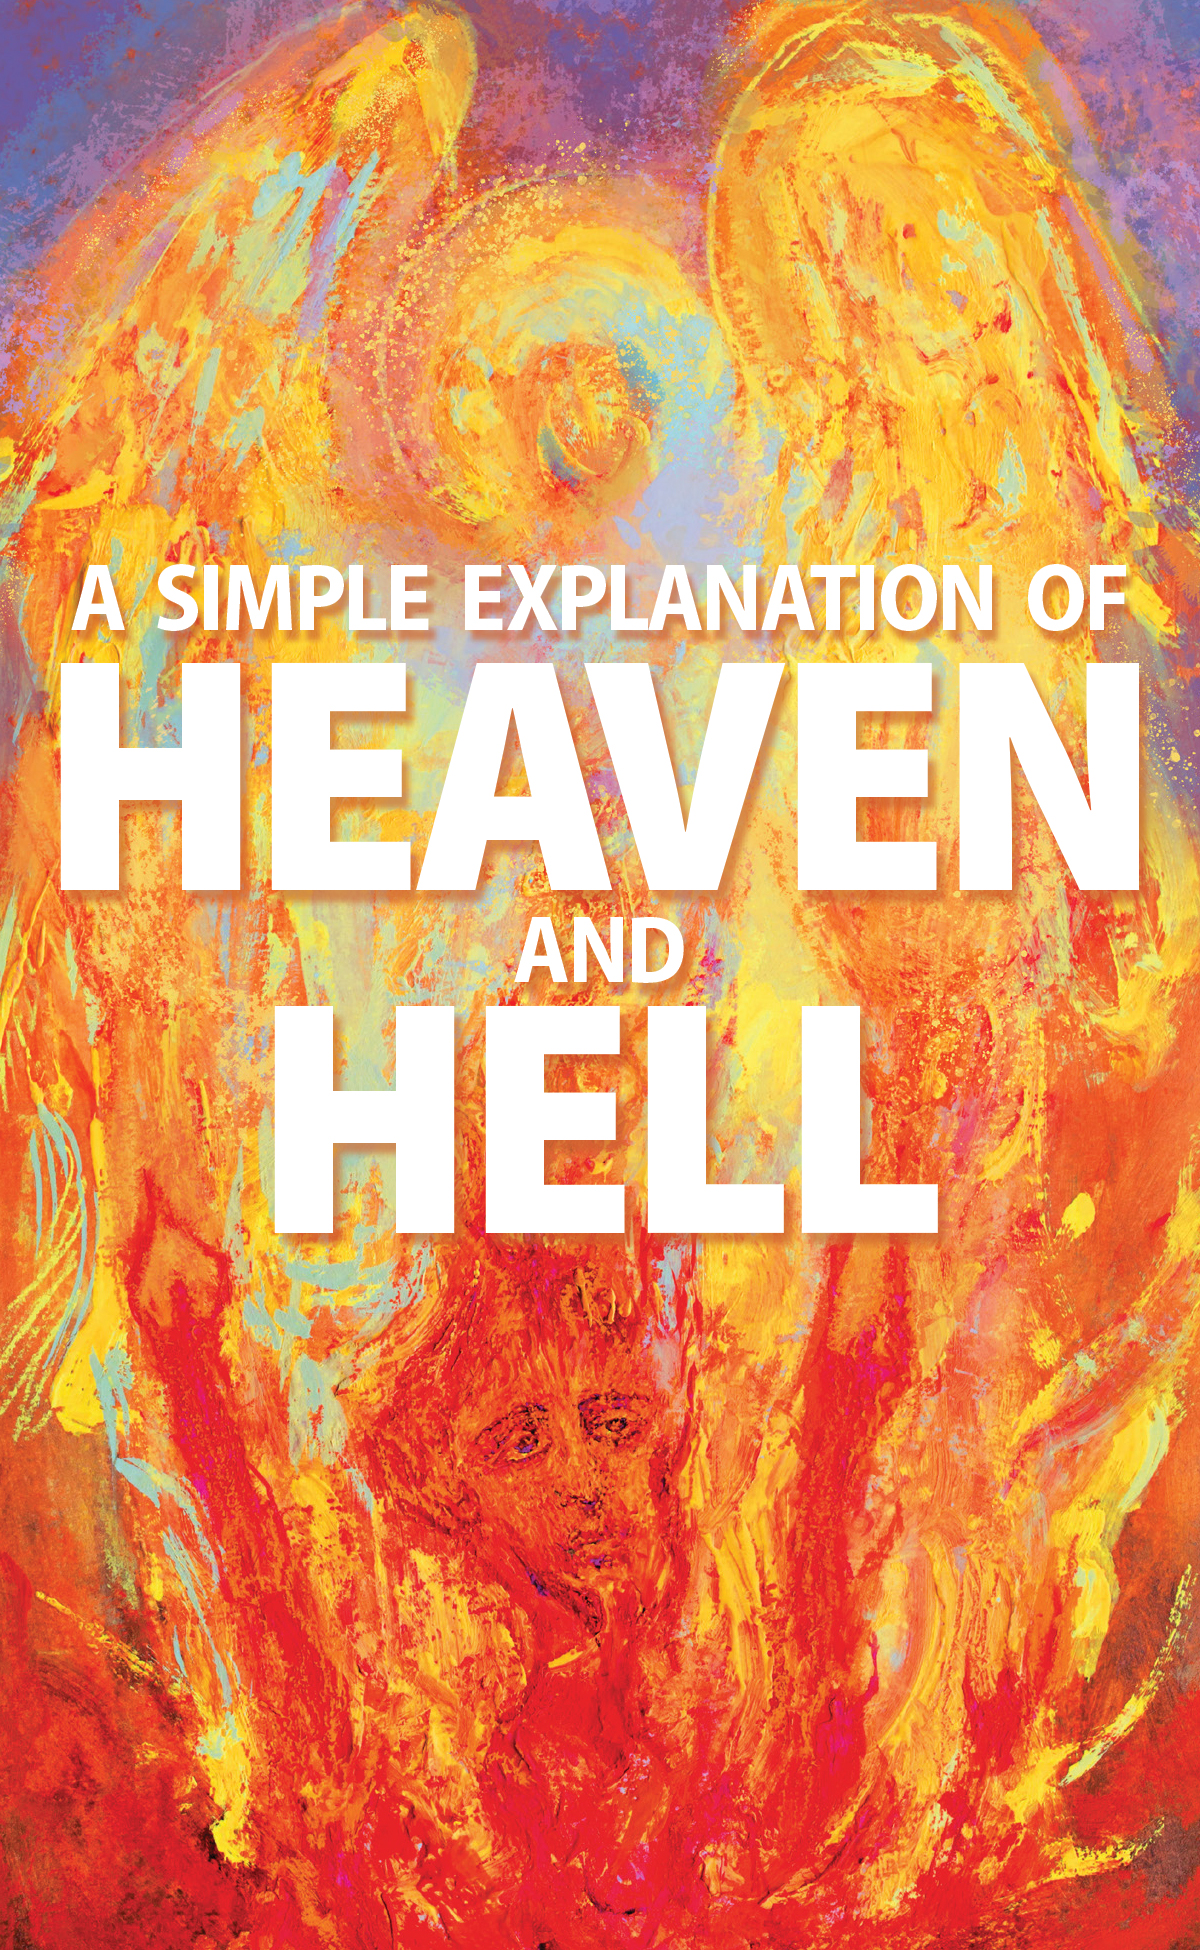 A Simple Explanation of Heaven and Hell